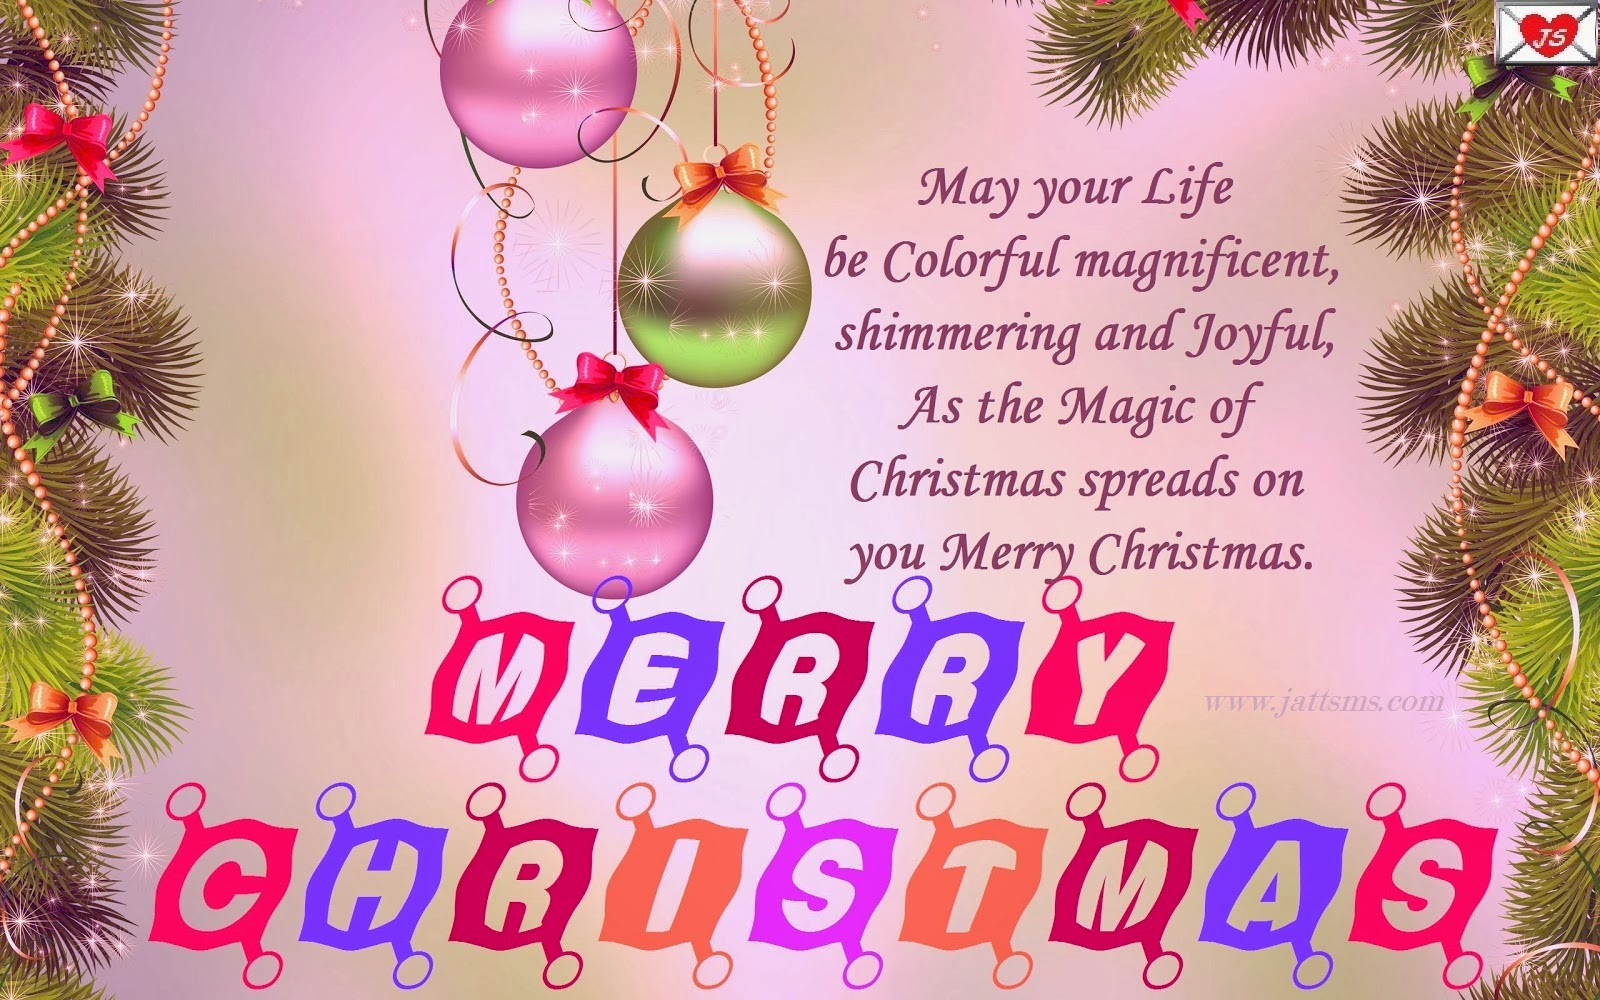 Best} Merry Christmas Whatsapp Status and Messages - Whatsapp Lover